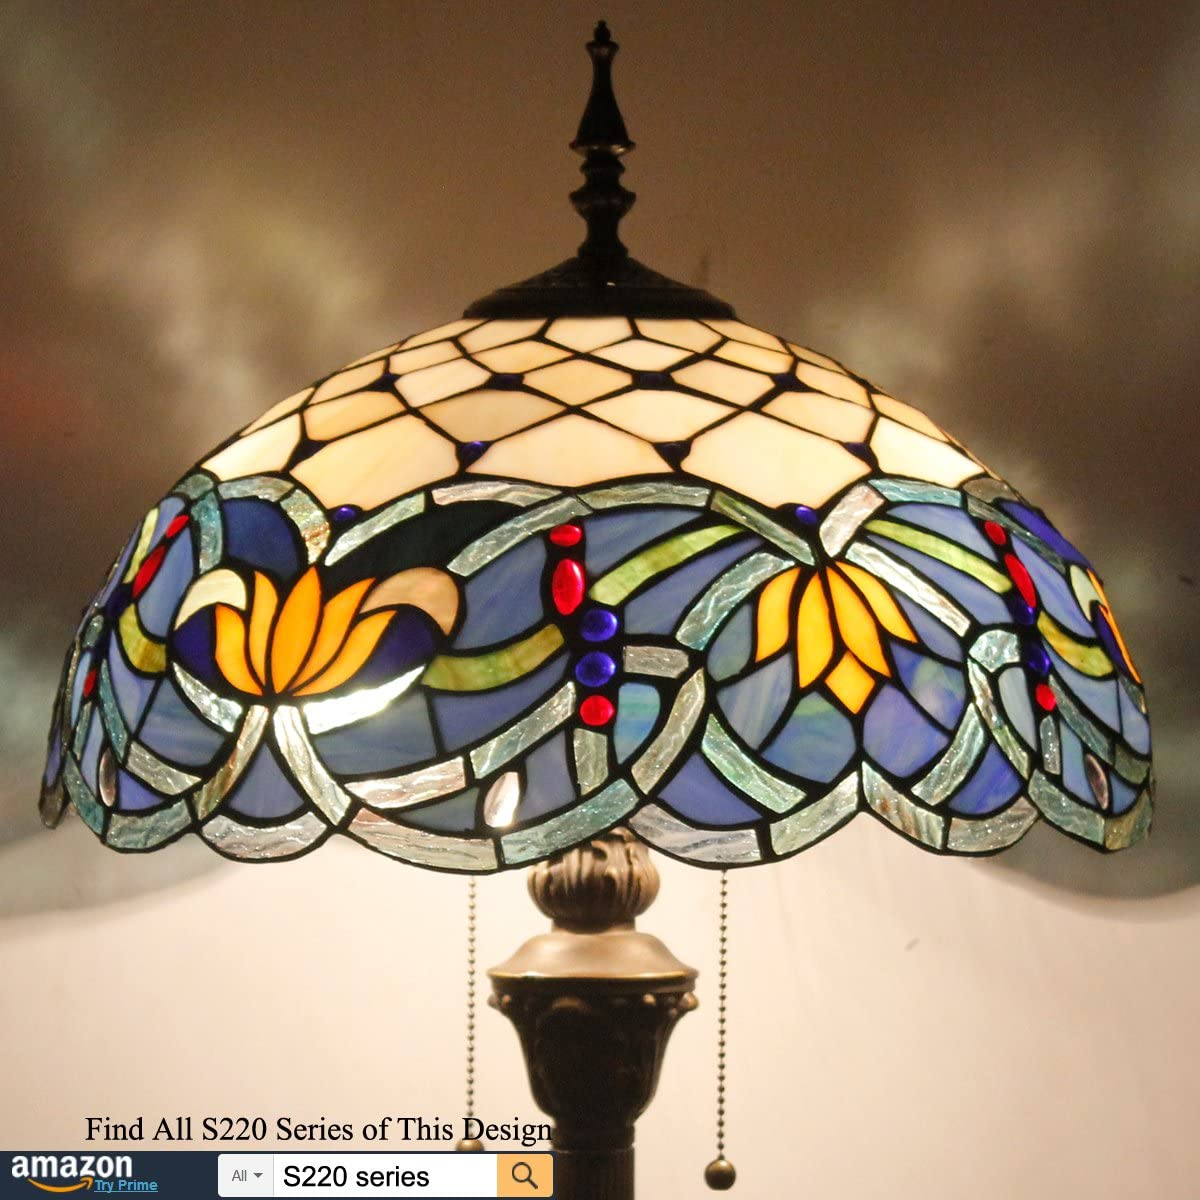 Tiffany Style Floor Standing Lamp 64 Inch Tall Blue Stained Glass Shade Crystal Bead Dragonfly 2E26 Pull Chain Antique Base for Living Room Bedroom Coffee Table S004 WERFACTORY